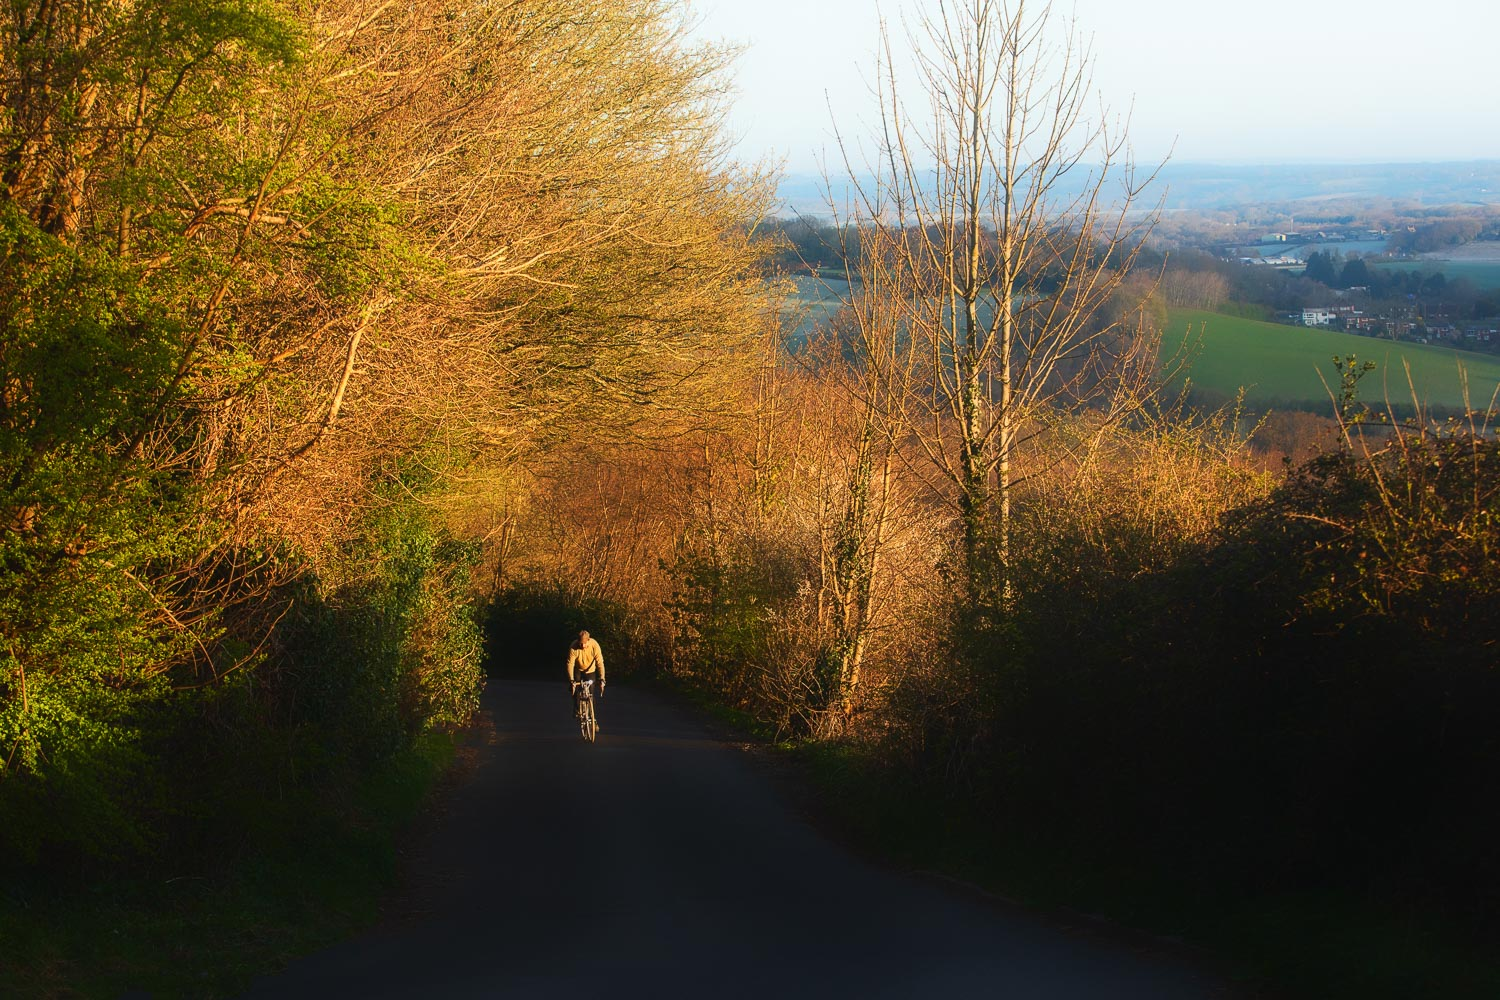 Cyclist emerging into sunshine on leafy country lane